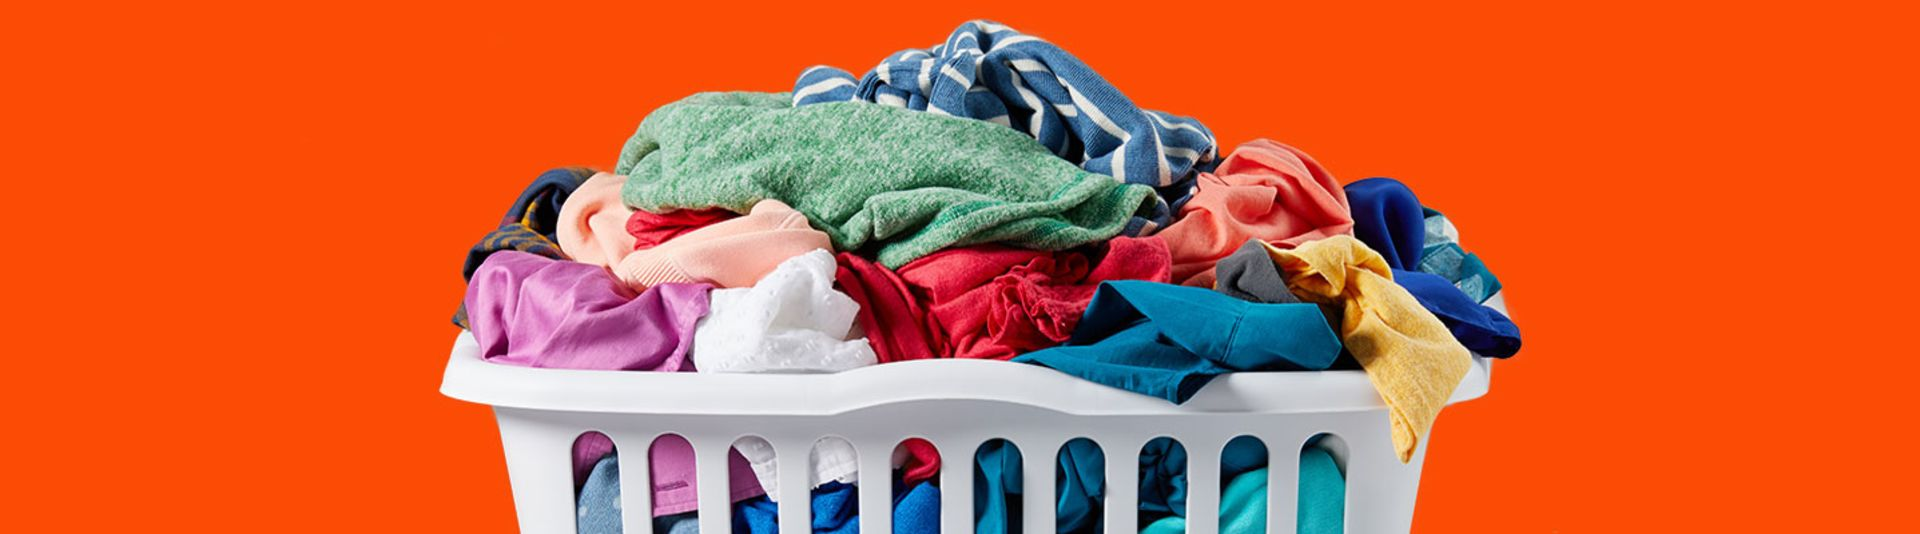 A laundry basket full of colorful garments